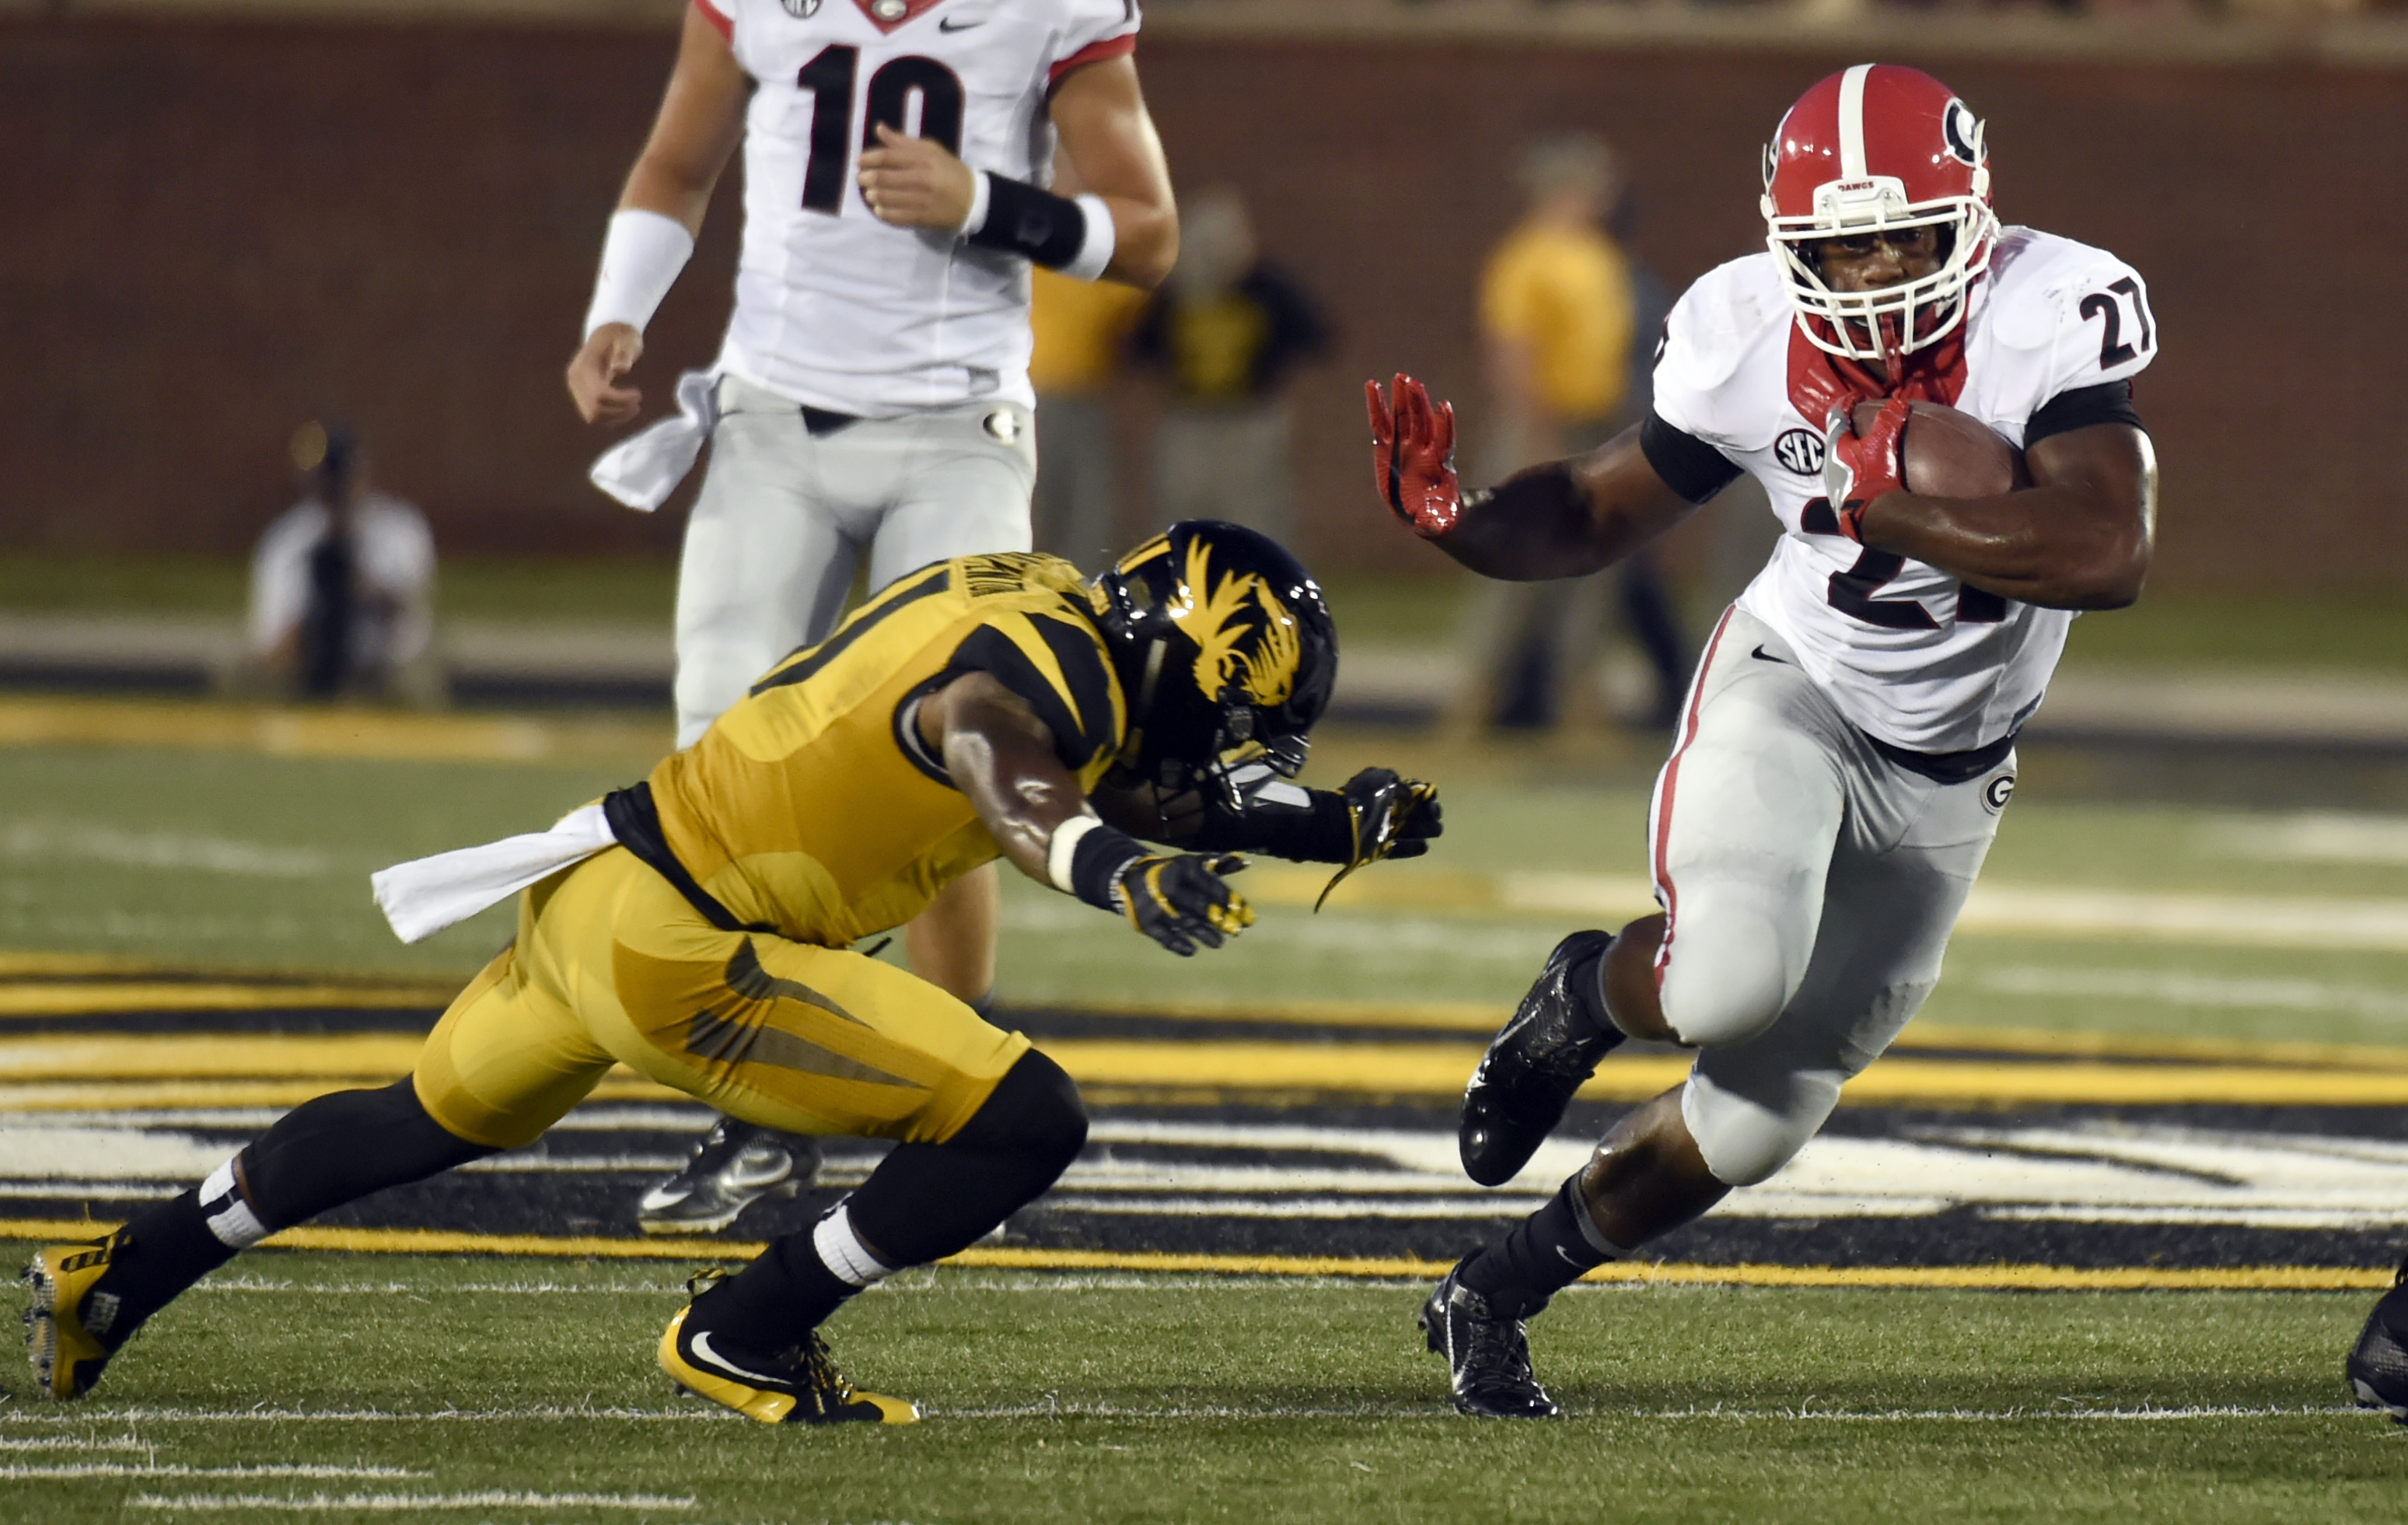 File-This Sept. 17, 2016, file photo shows Georgia running back Nick Chubb, right, running past Missouri defensive back Aarion Penton during the first half of an NCAA college football game in Columbia, Mo. Chubb is averaging 121 yards rushing per game and